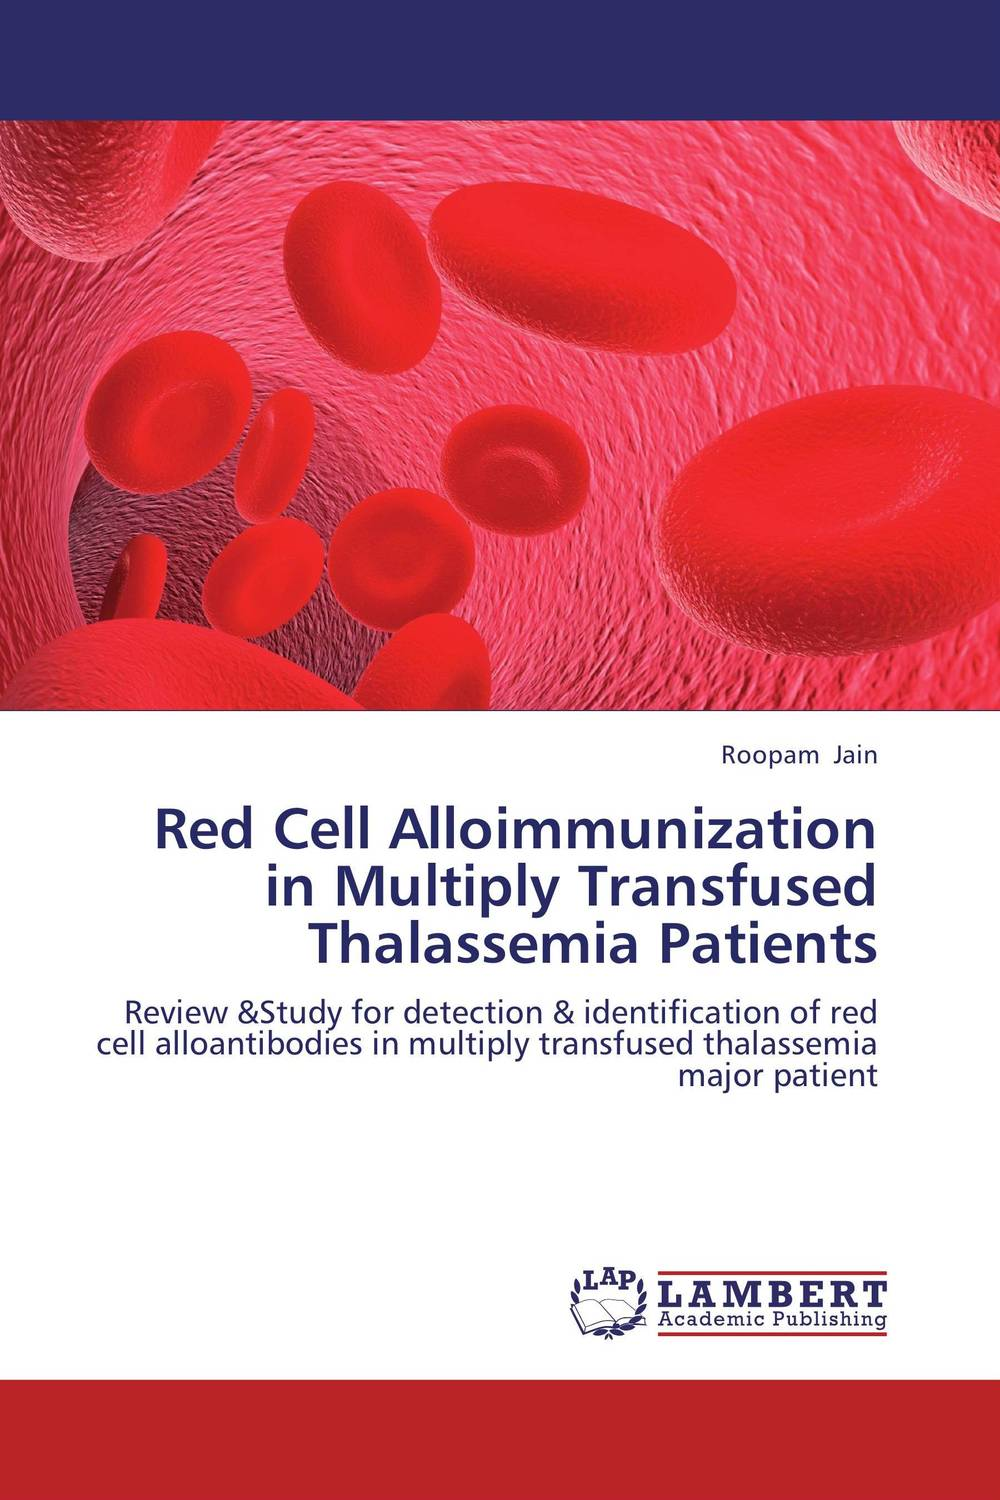 Red Cell Alloimmunization in Multiply Transfused Thalassemia Patients peter lockhart b oral medicine and medically complex patients